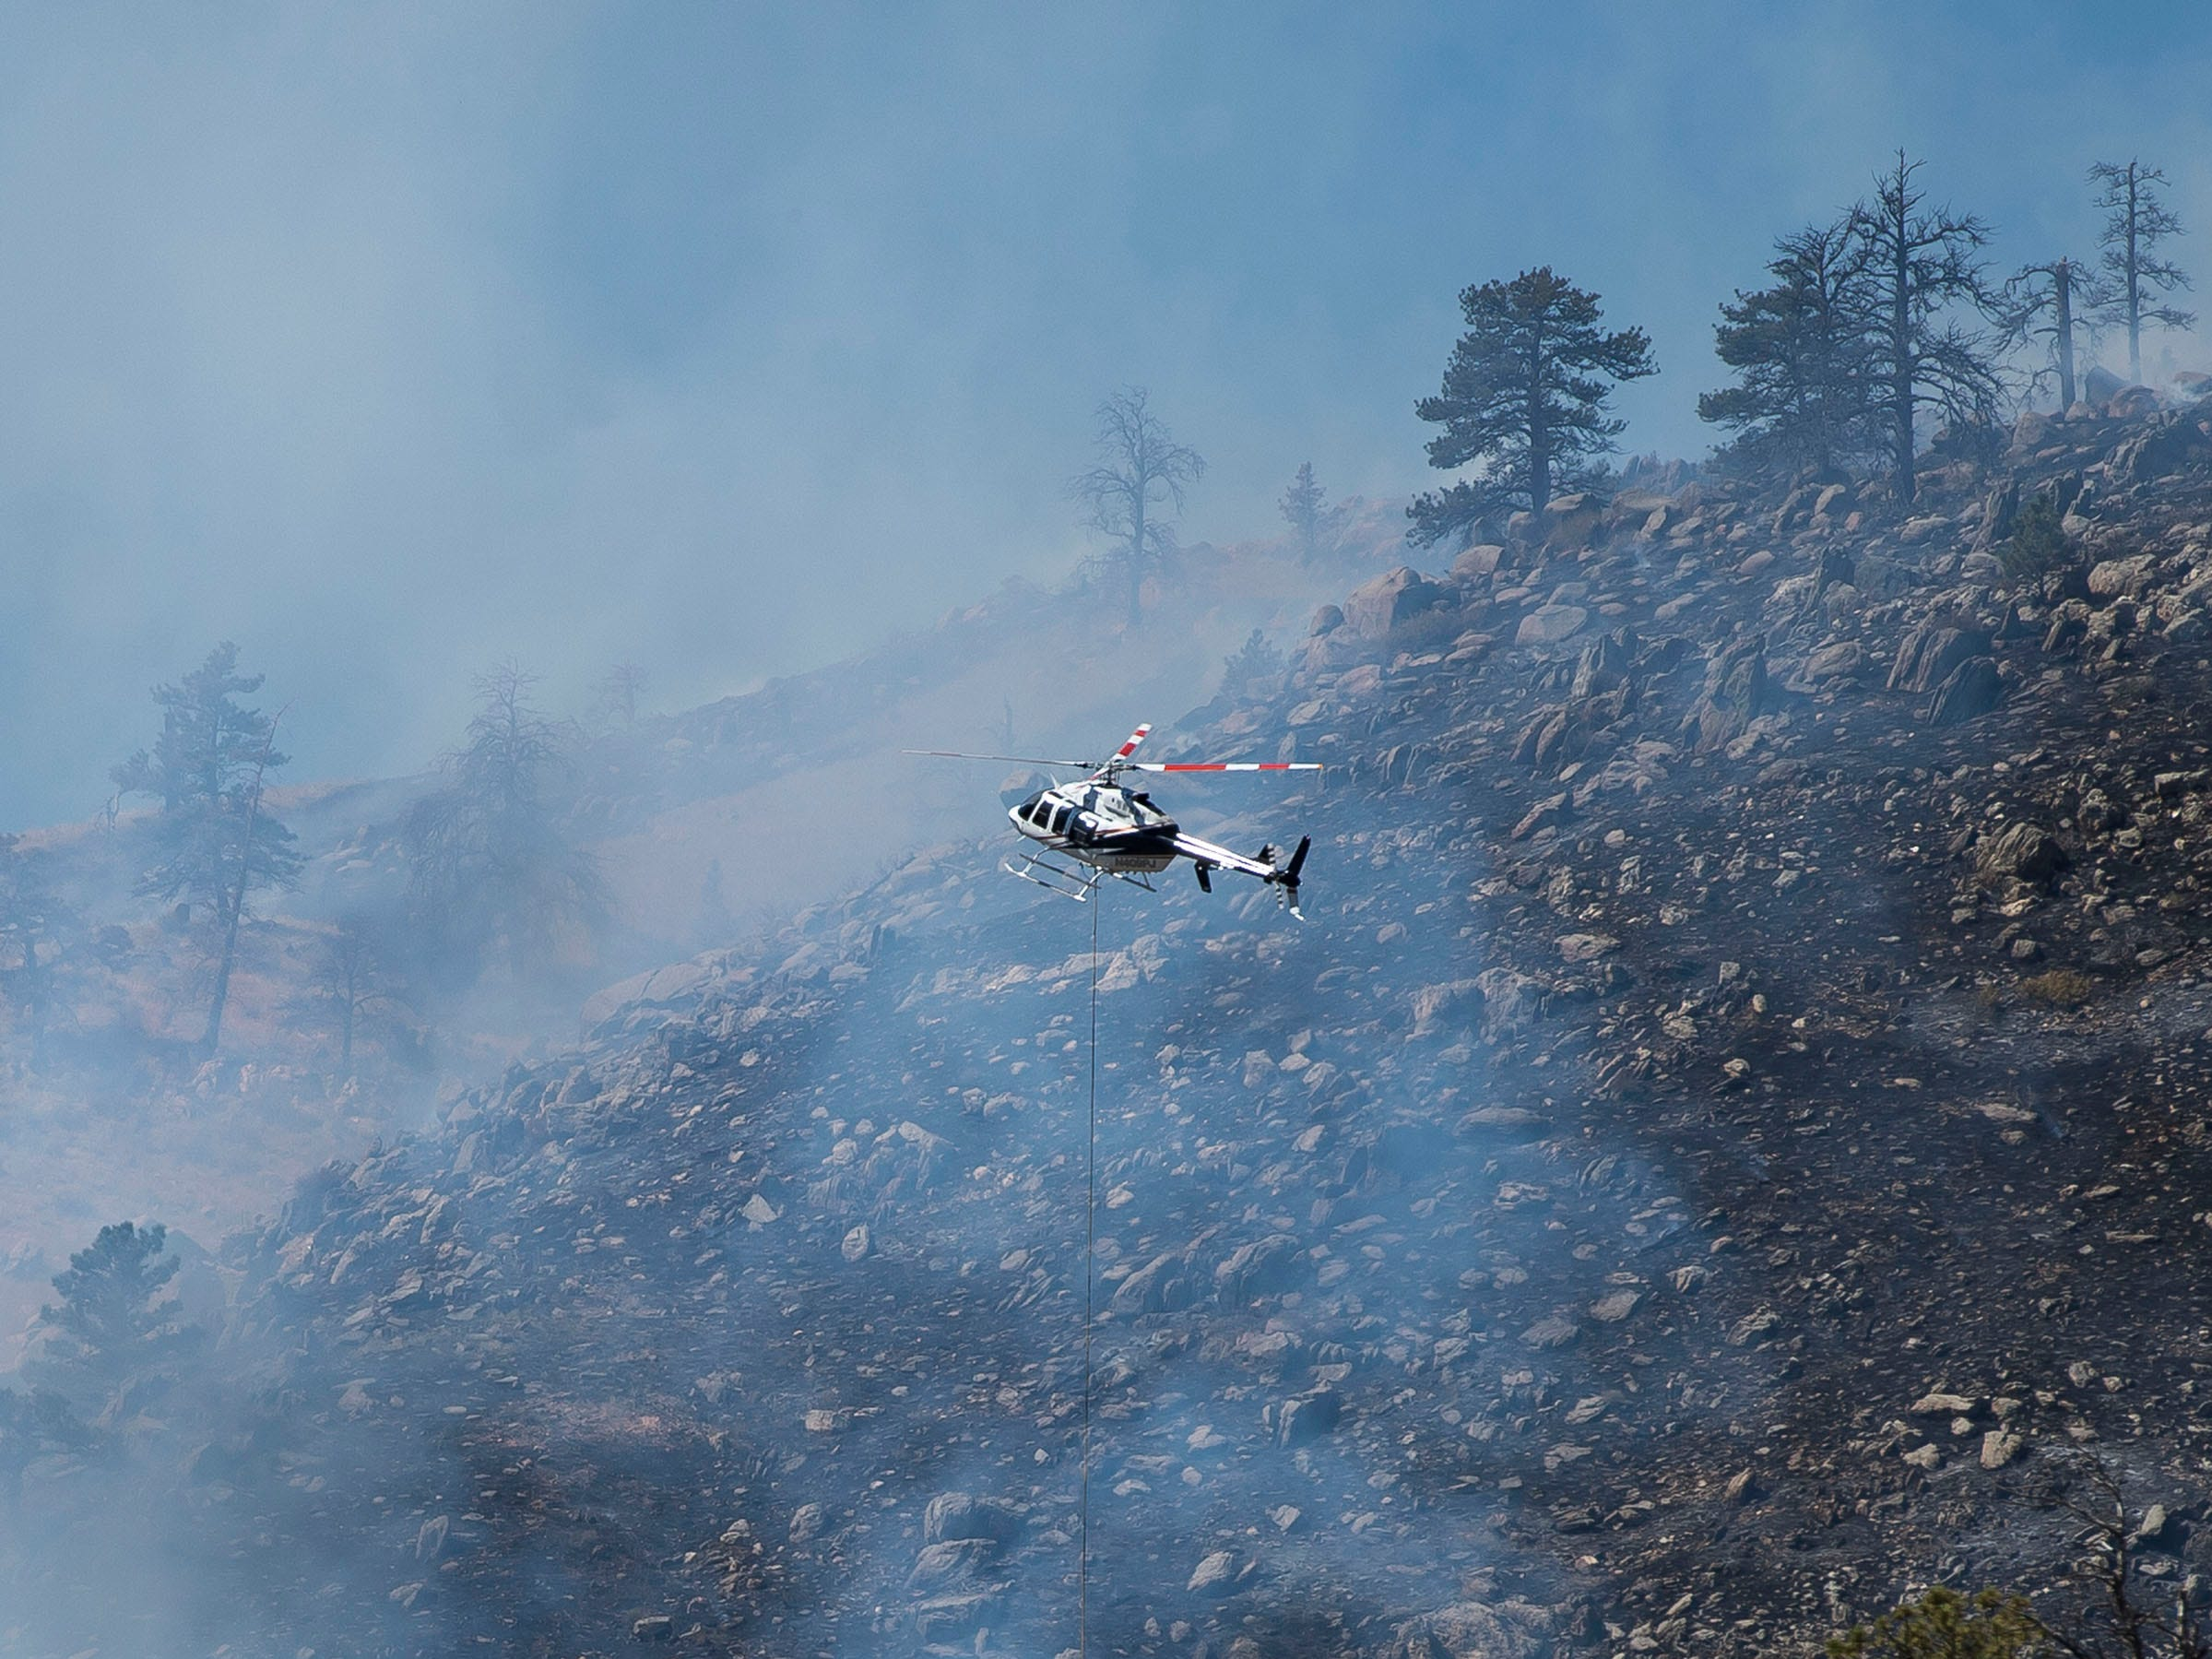 A helicopter drops water from Seaman Reservoir onto the fire burning on the hillside nearby on Wednesday, Sept. 12, 2018, in the the Poudre Canyon, near Seaman Reservoir in Larimer County, Colo.